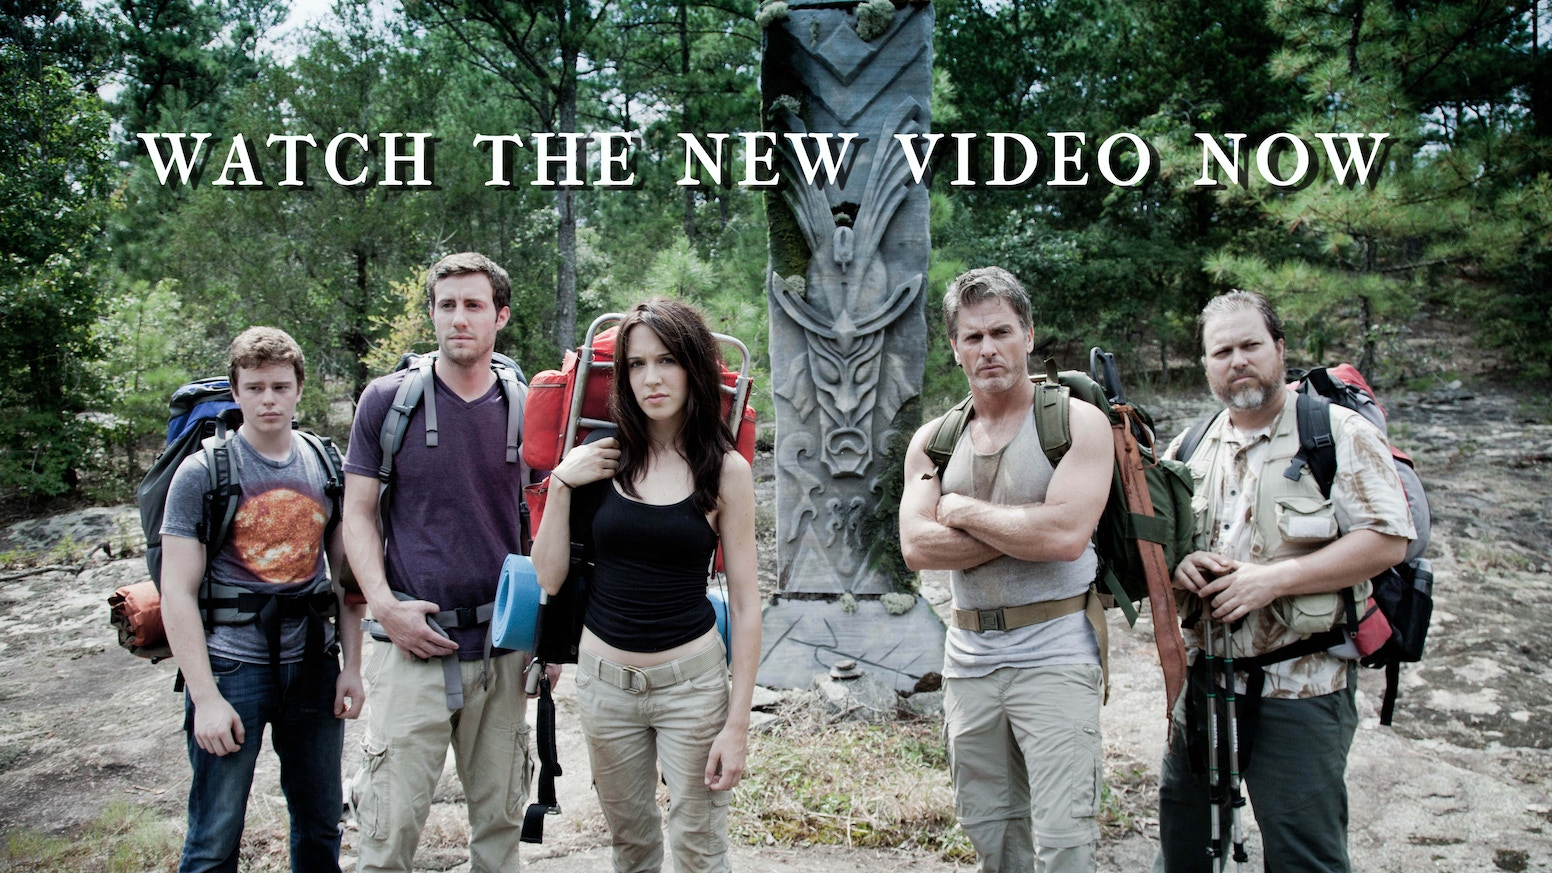 A group of hikers on the Appalachian Trail stumbles across an ancient secret that threatens their survival.